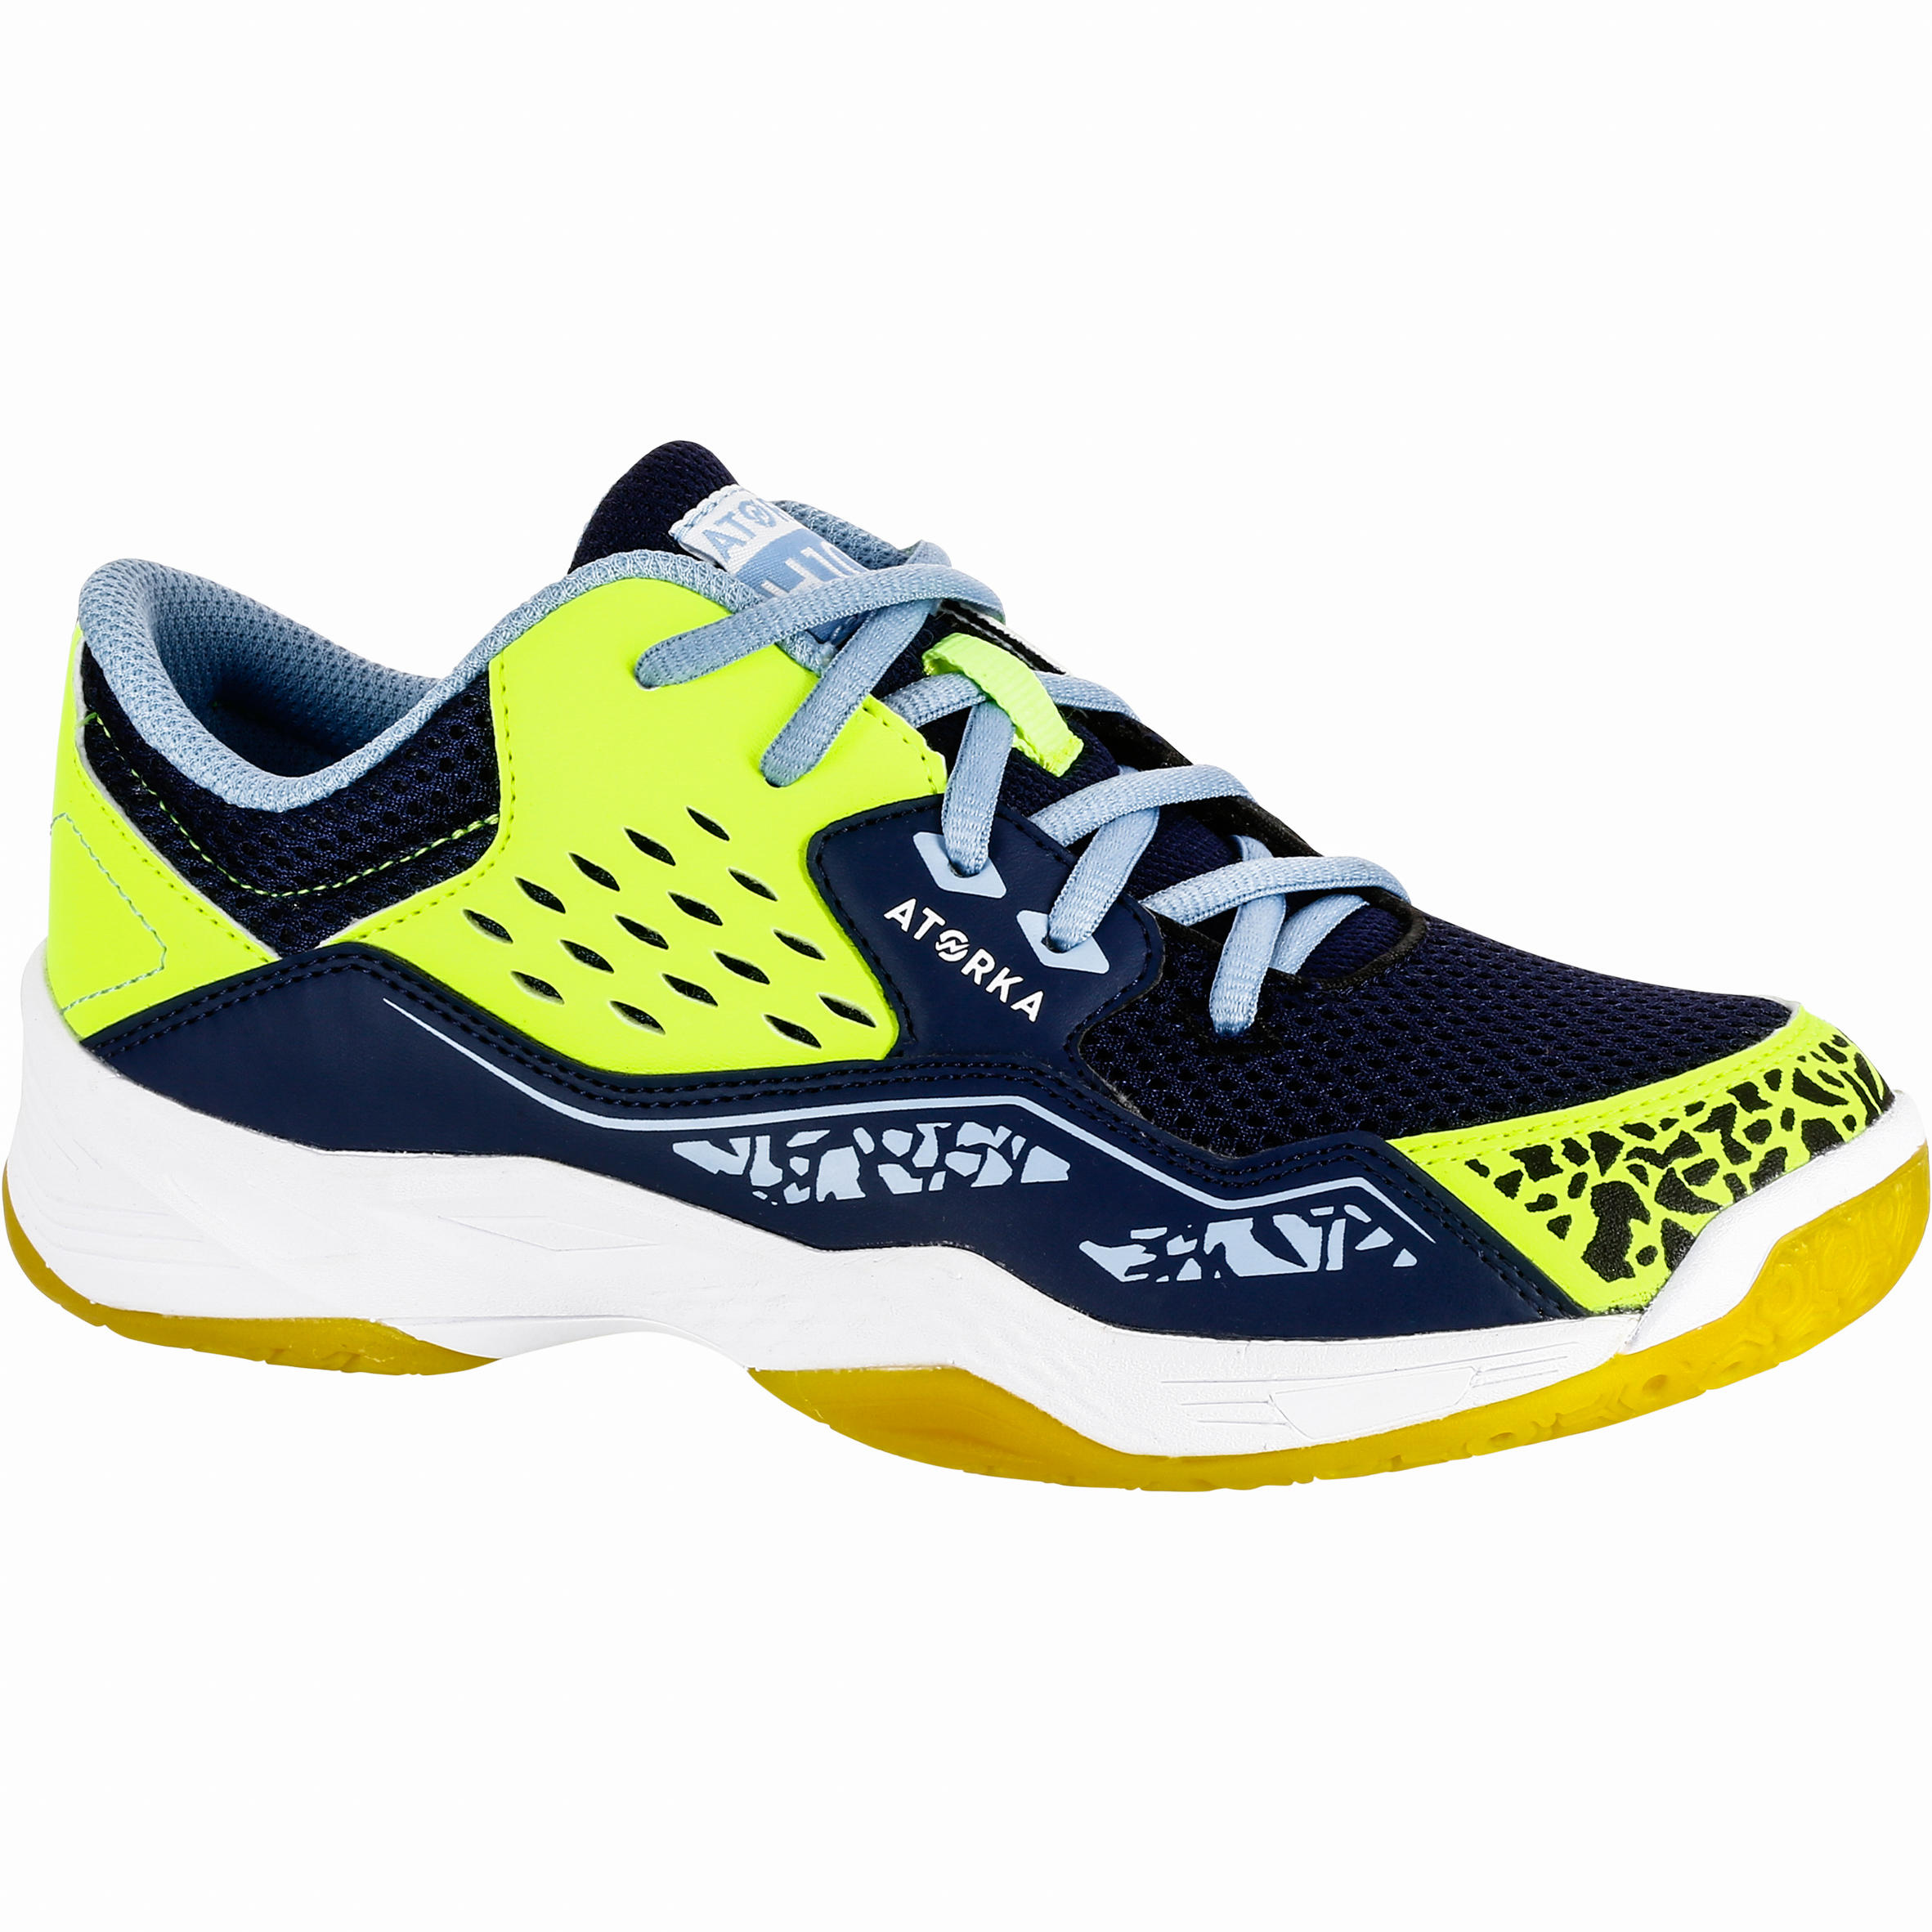 H100 Boys' Hook&Loop Handball Shoes - Blue/Yellow